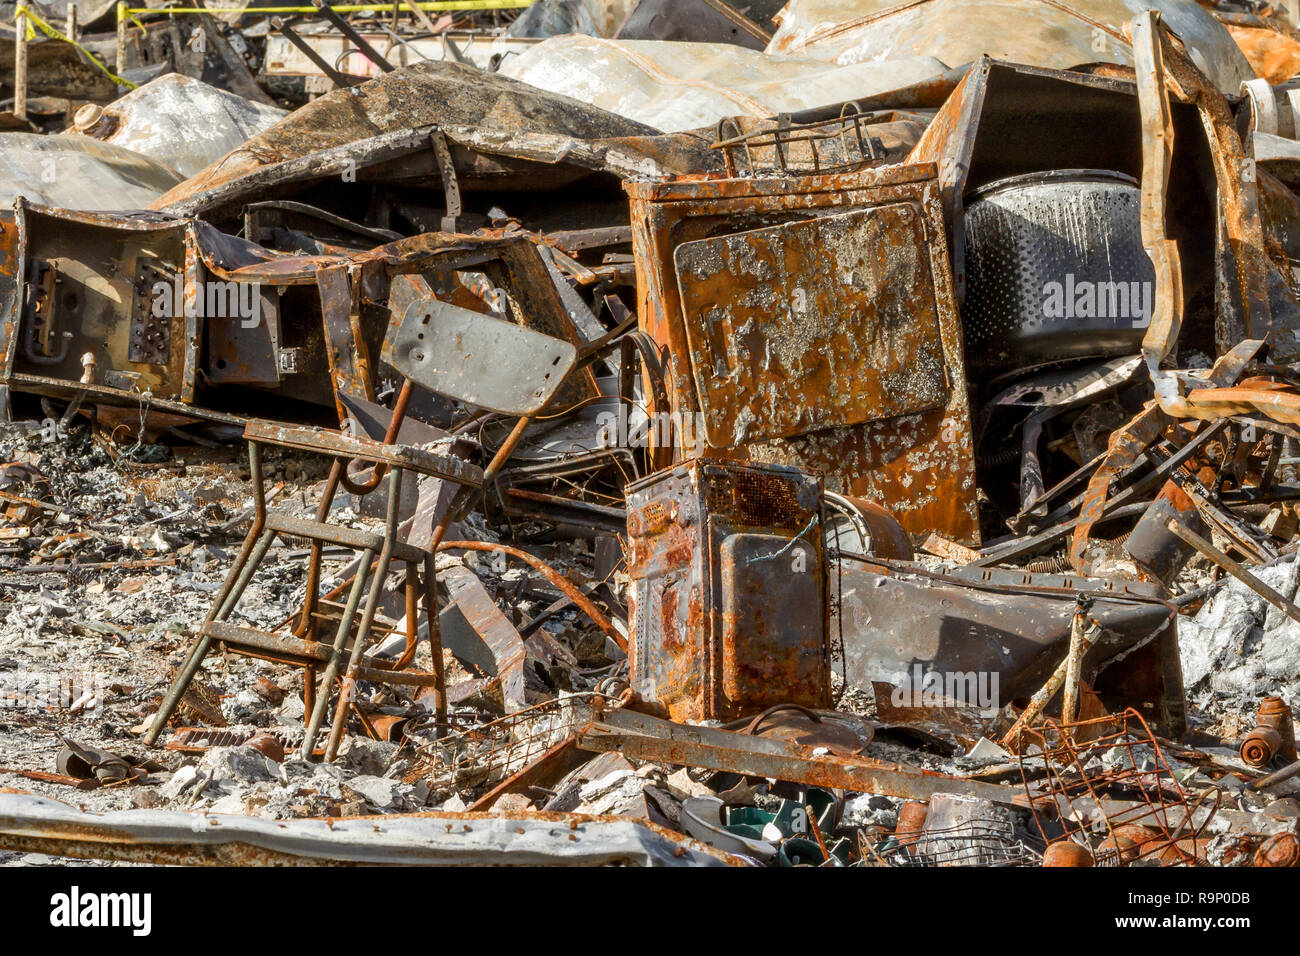 Broken Home - These images were captured in neighborhoods near Santa Rosa, California, where wildfires in early October 2017. - Stock Image